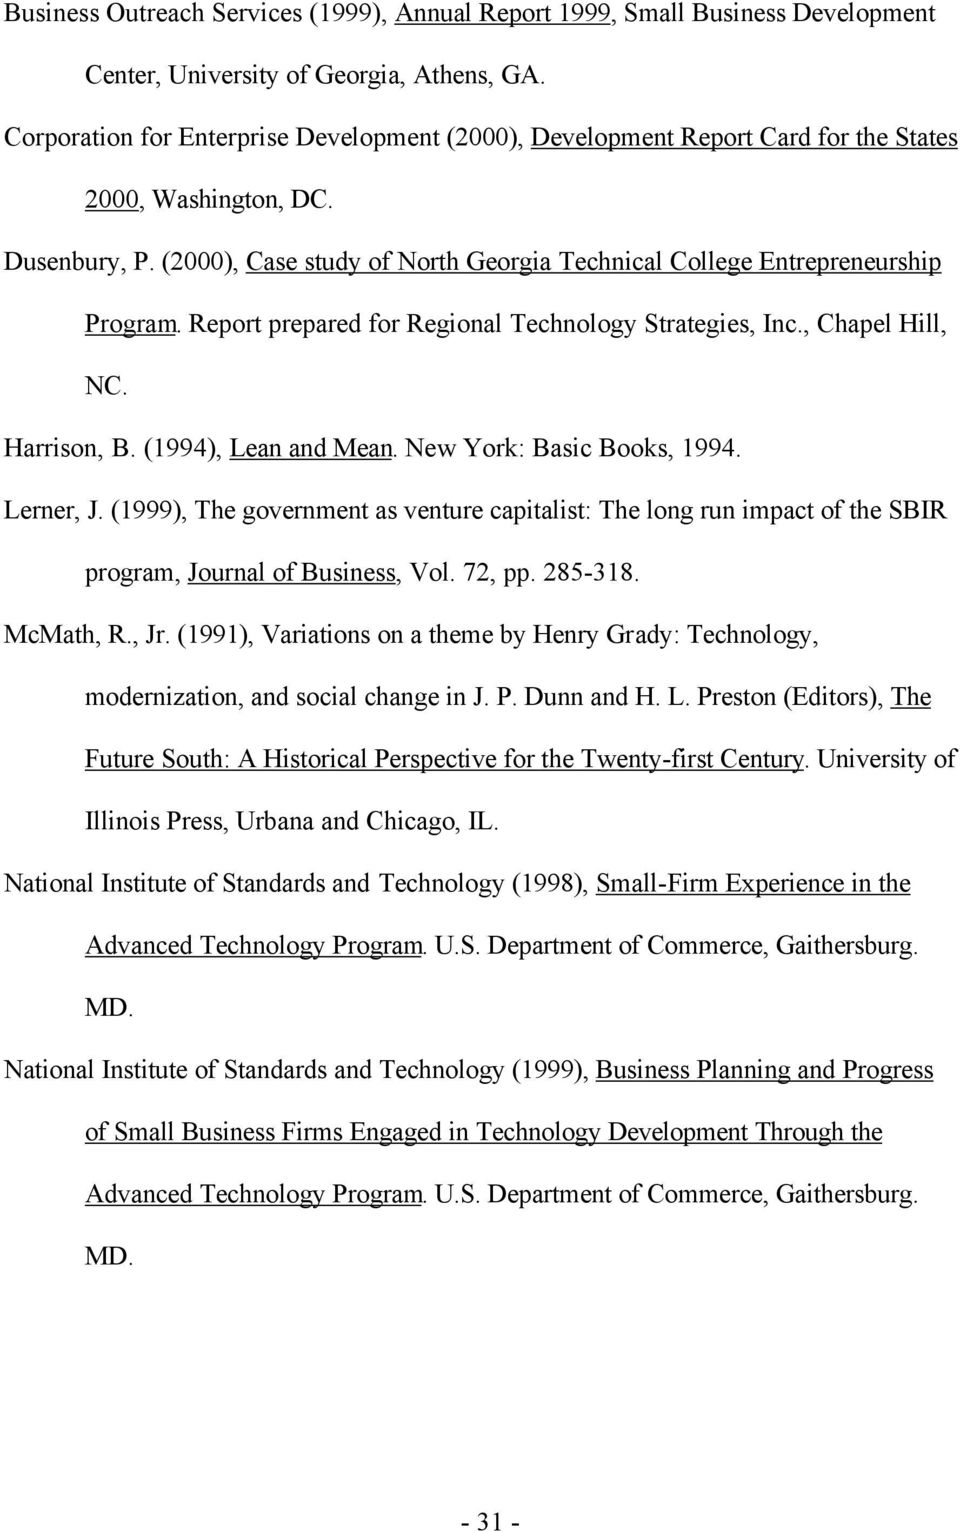 (2000), Case study of North Georgia Technical College Entrepreneurship Program. Report prepared for Regional Technology Strategies, Inc., Chapel Hill, NC. Harrison, B. (1994), Lean and Mean.